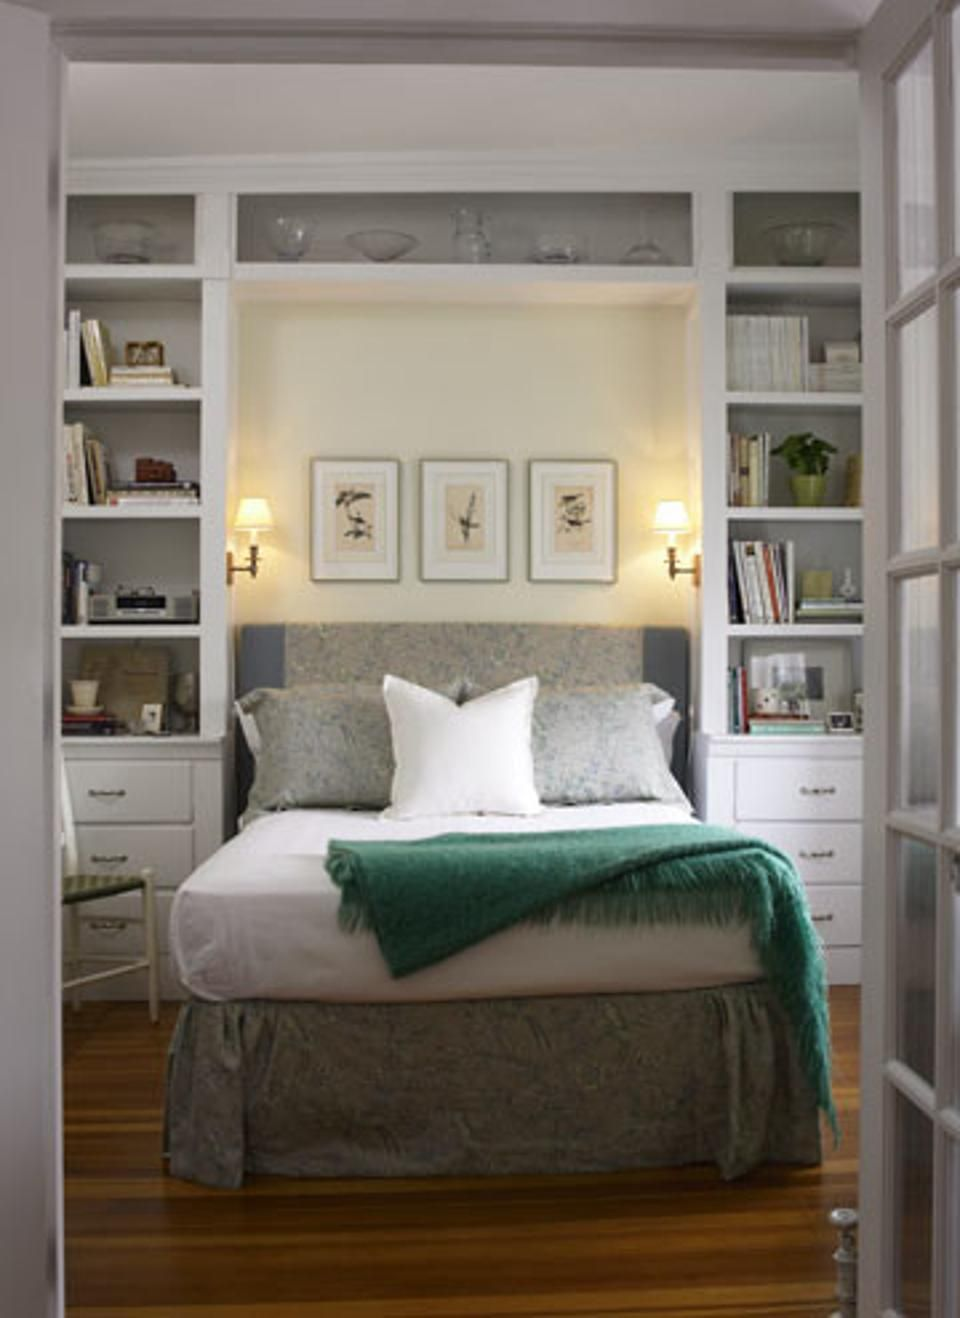 10 tips to make a small bedroom look great compact for Bedroom designs 10 x 10